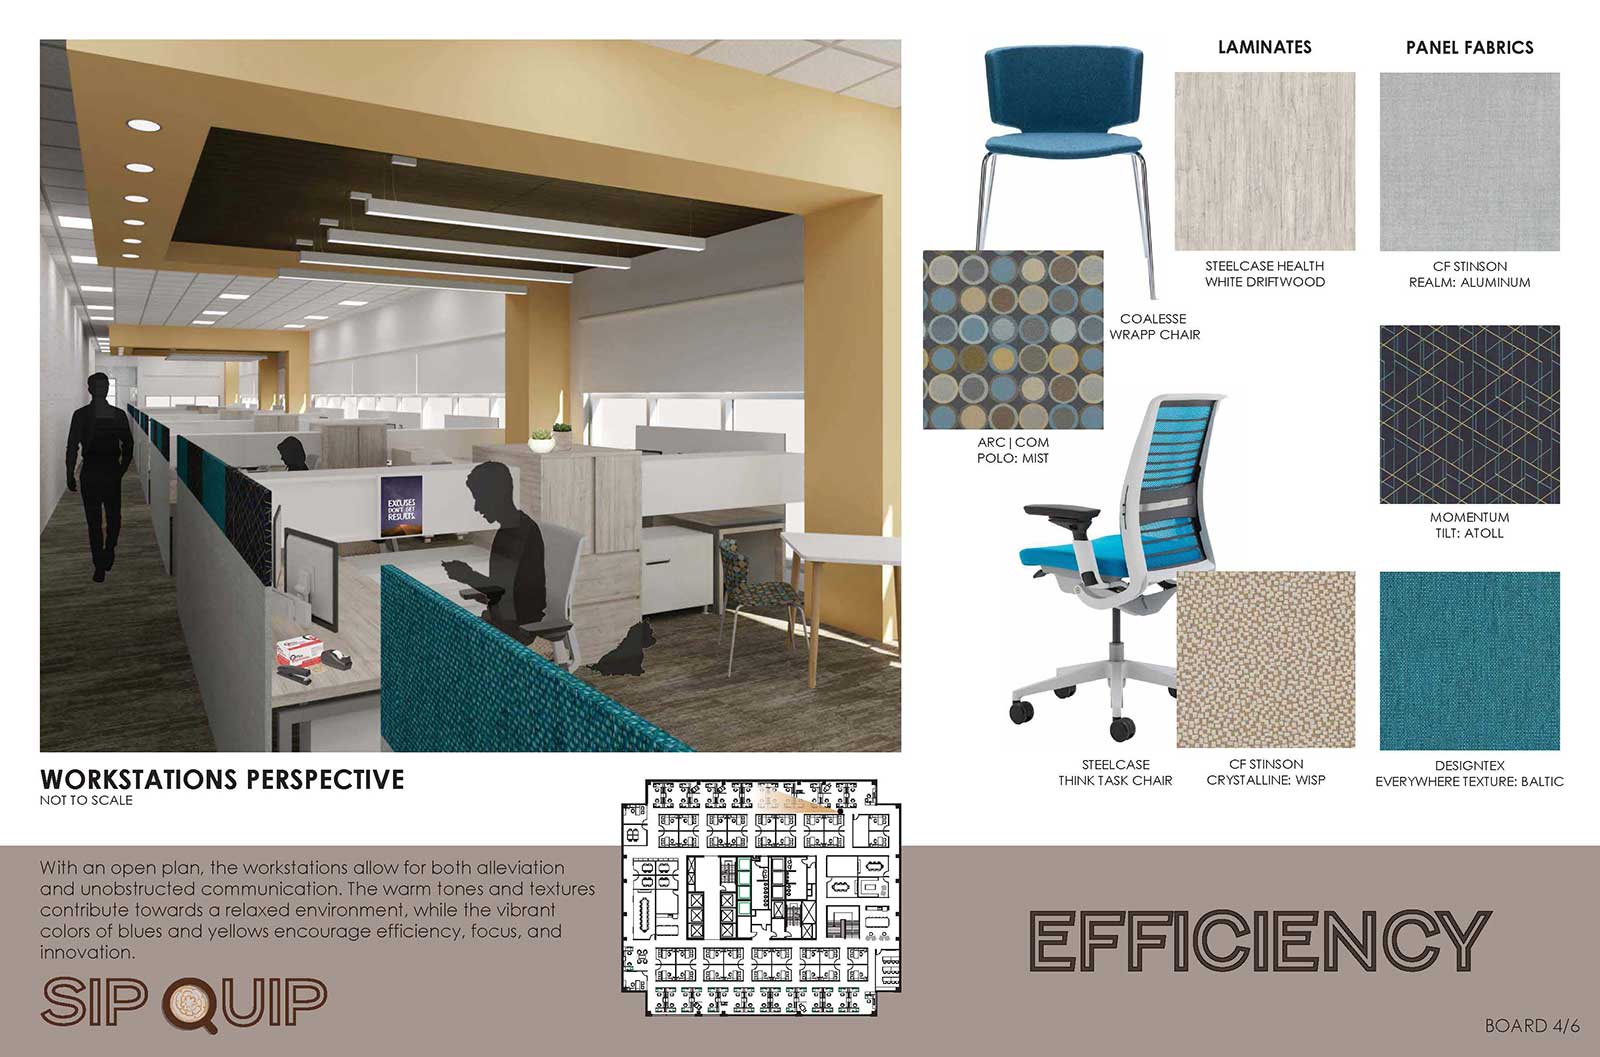 2019 Barefield Workplace Solutions Steelcase Project first place winning project board, Ashley Wyatt